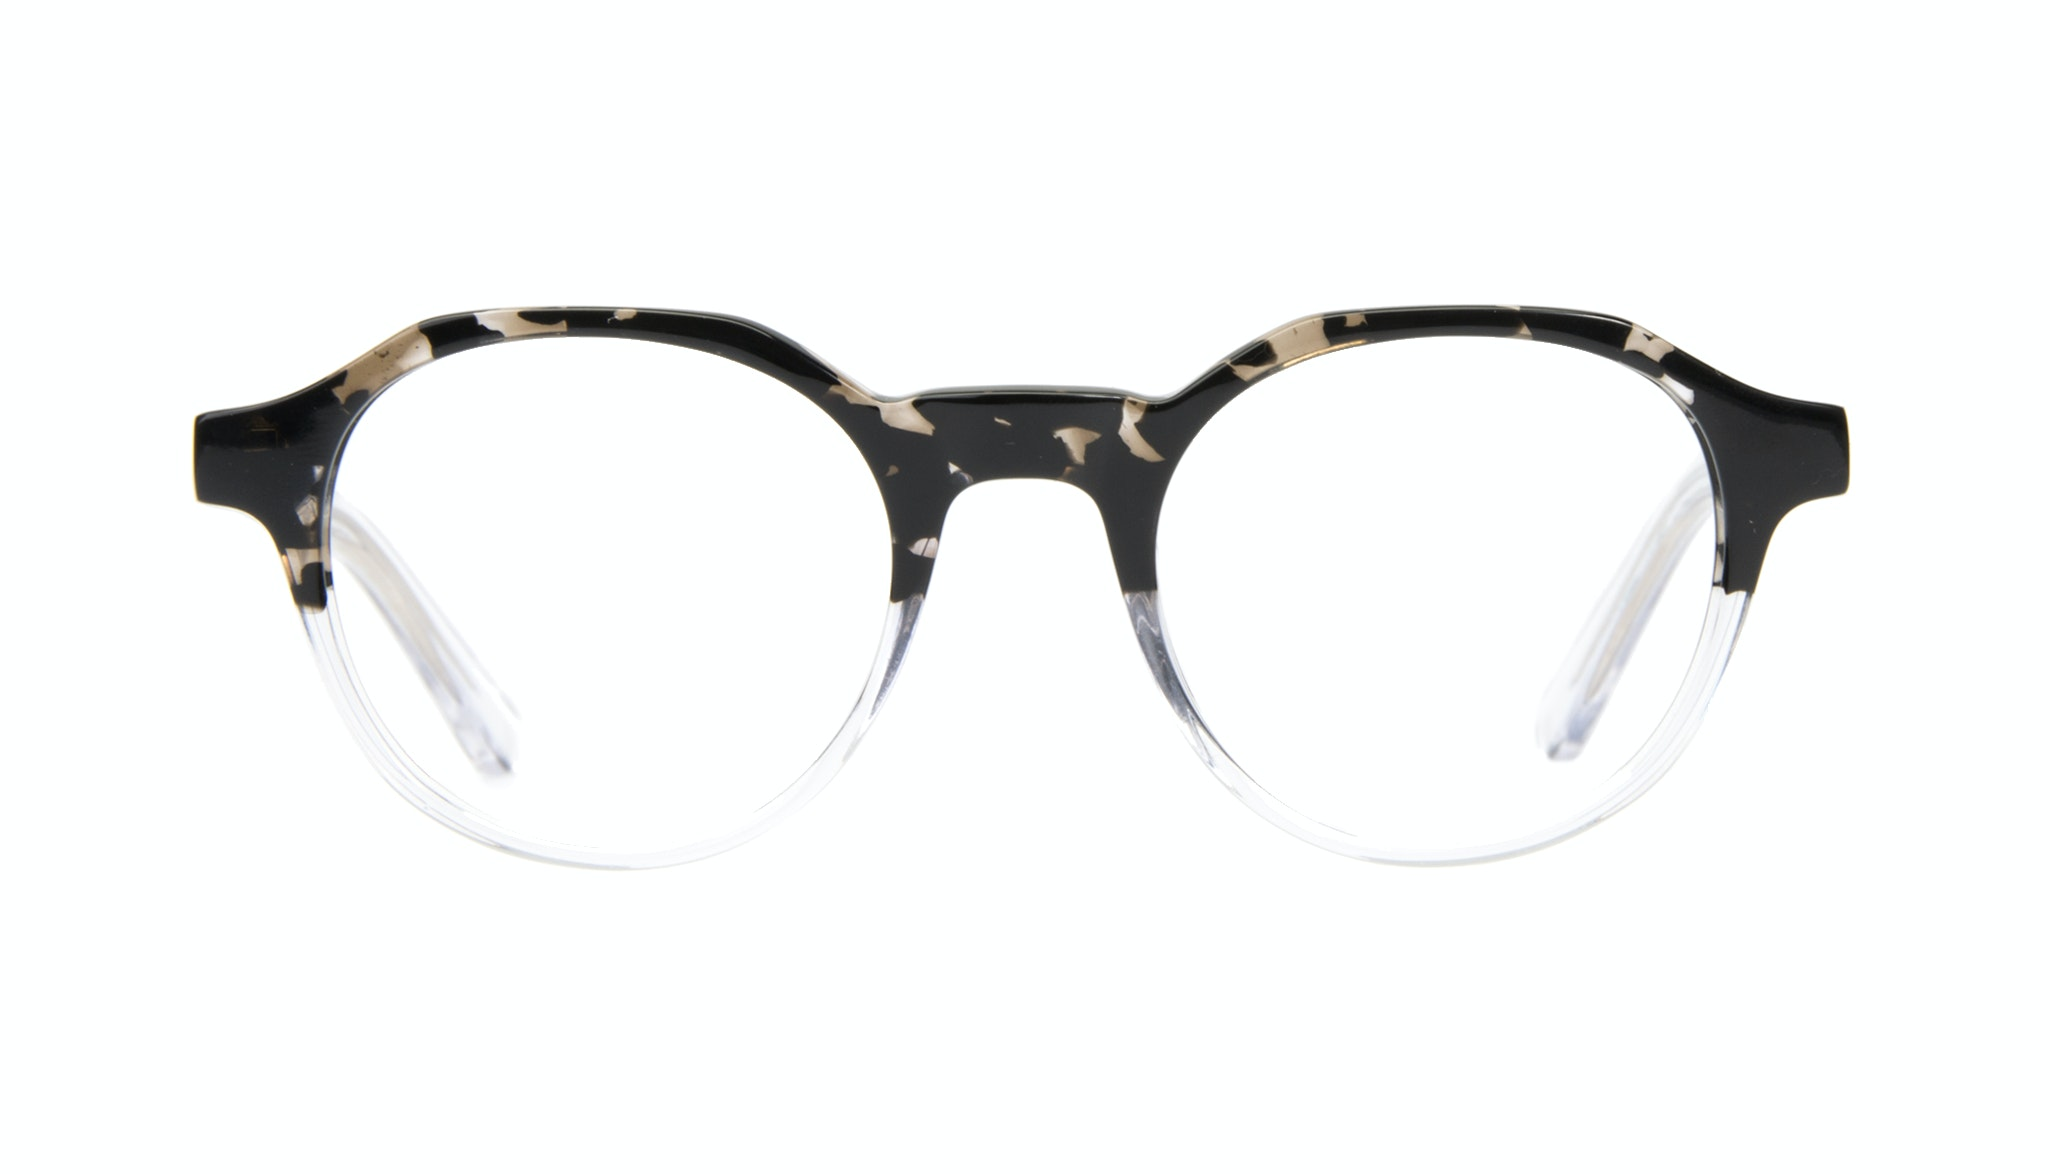 Affordable Fashion Glasses Round Eyeglasses Men Form Stone Clear Front